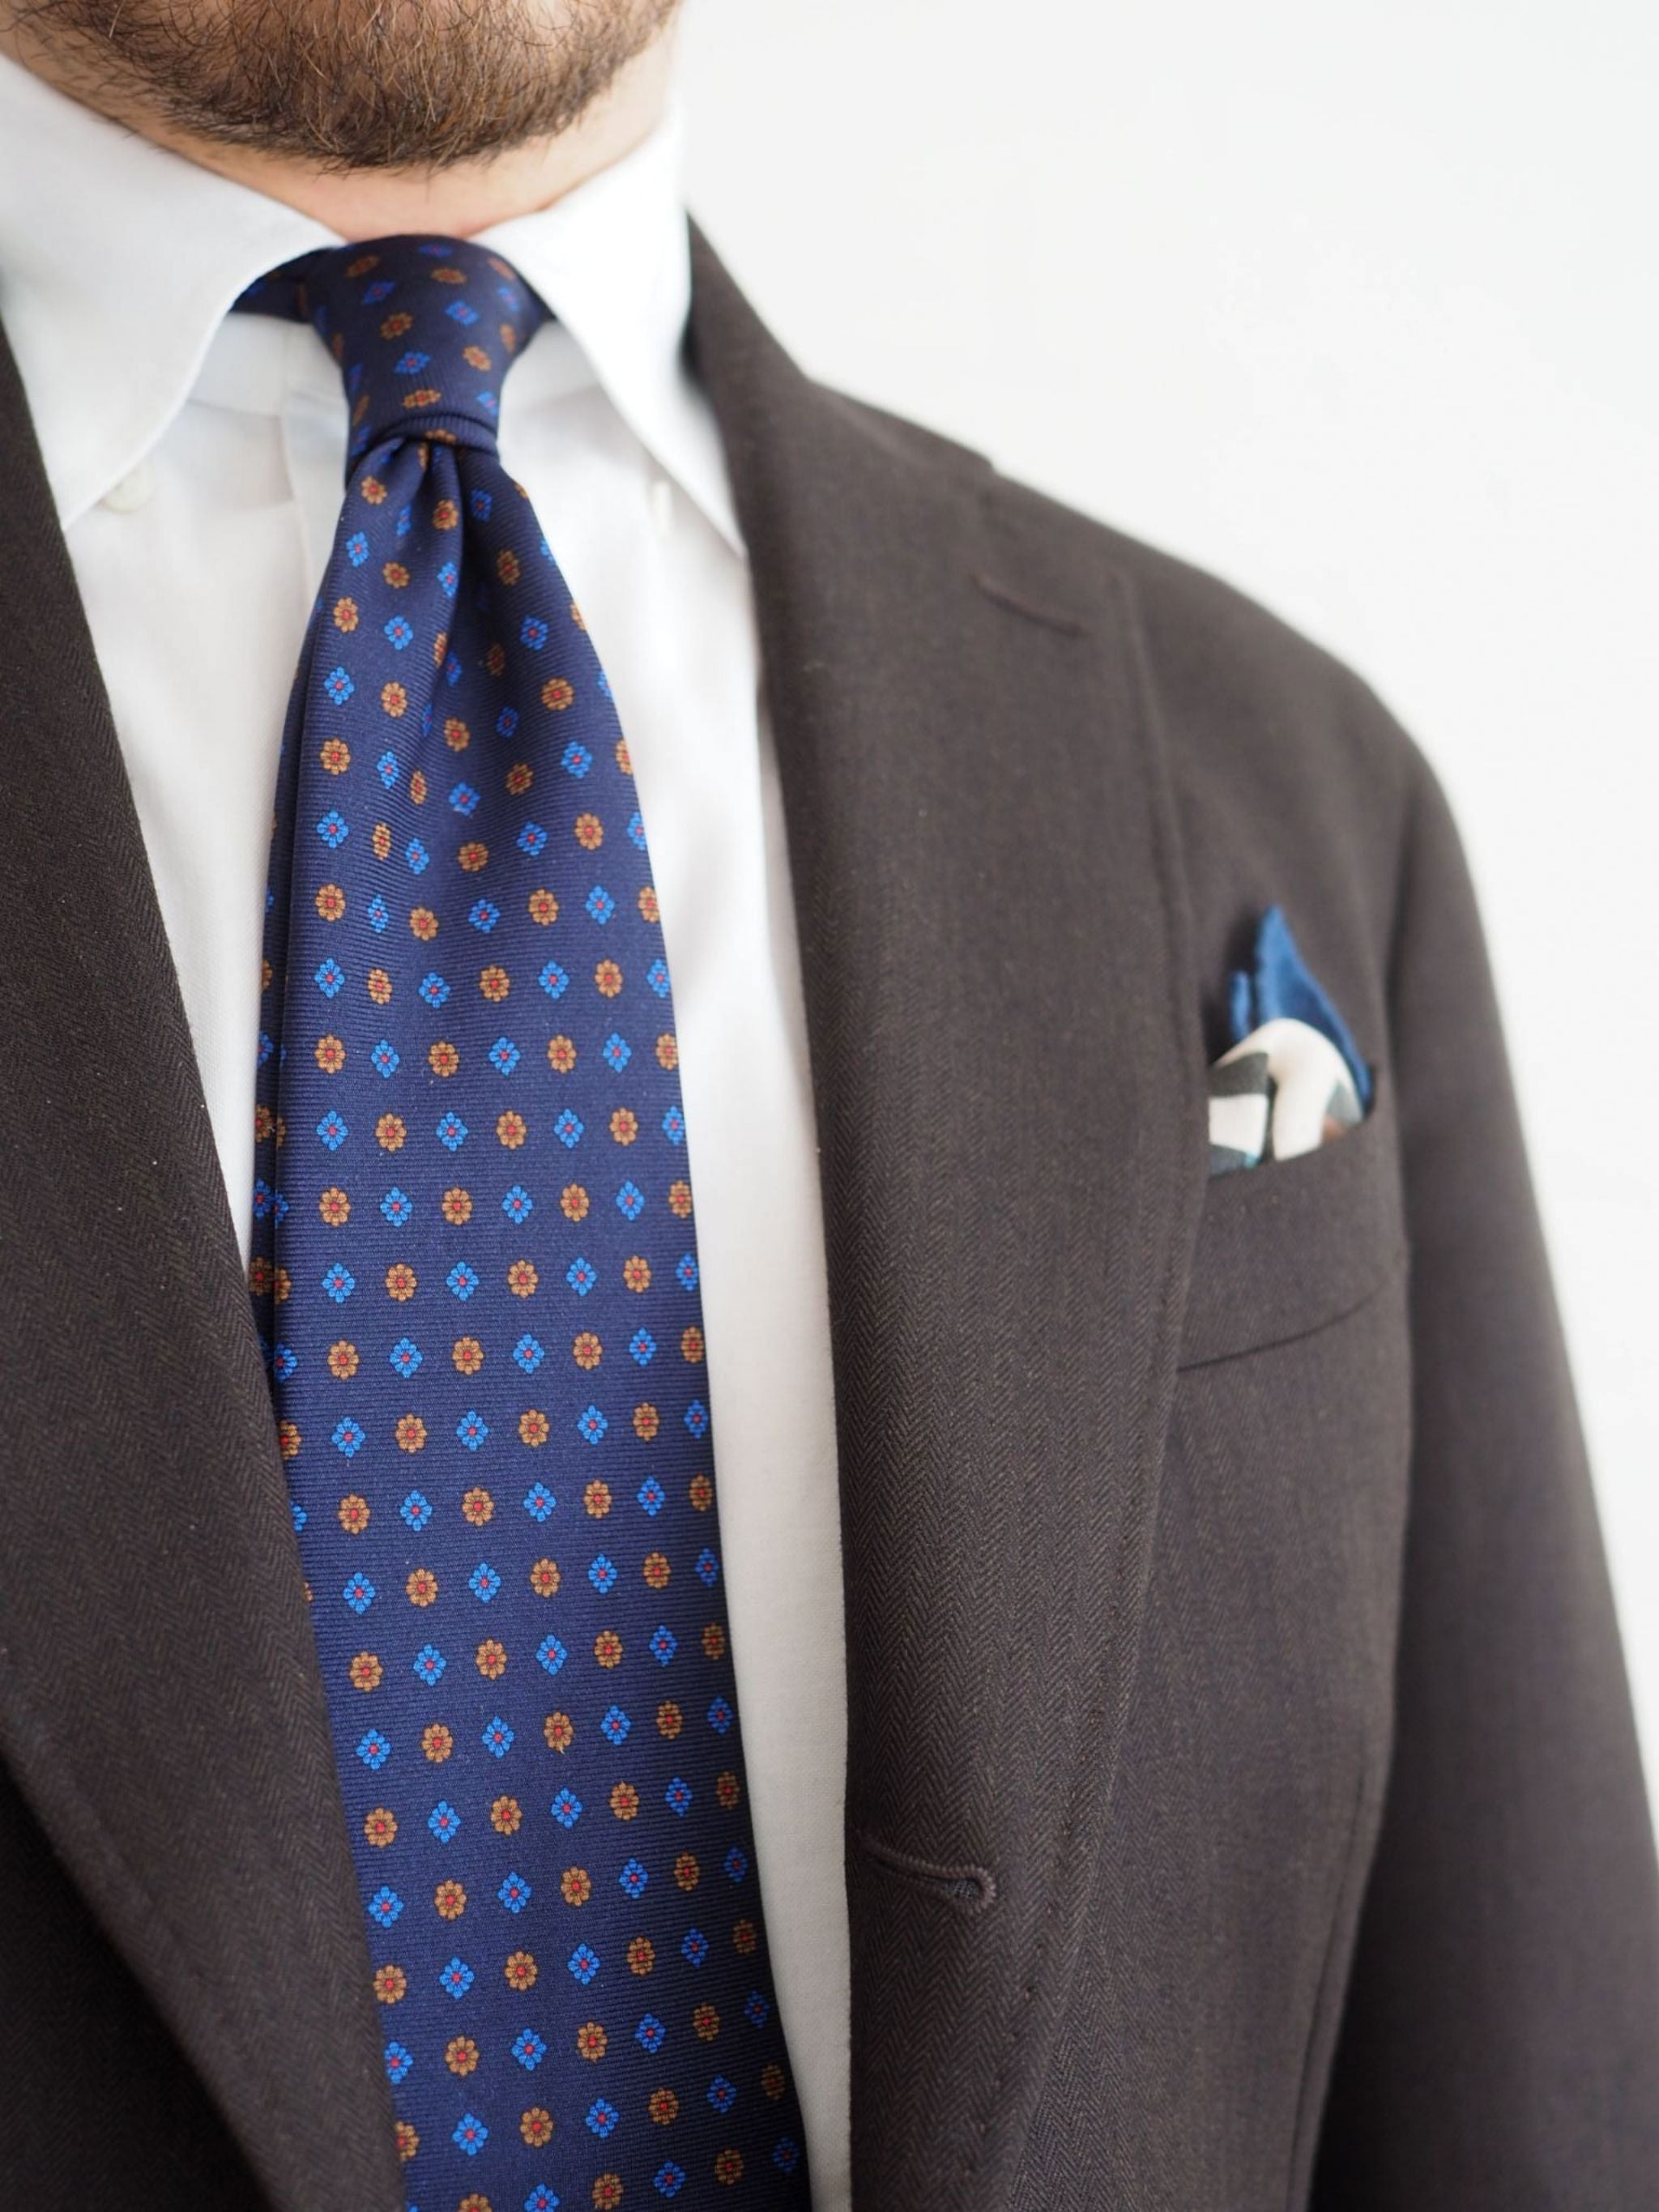 Favorite suits - details of brown suit and blue printed floral tie